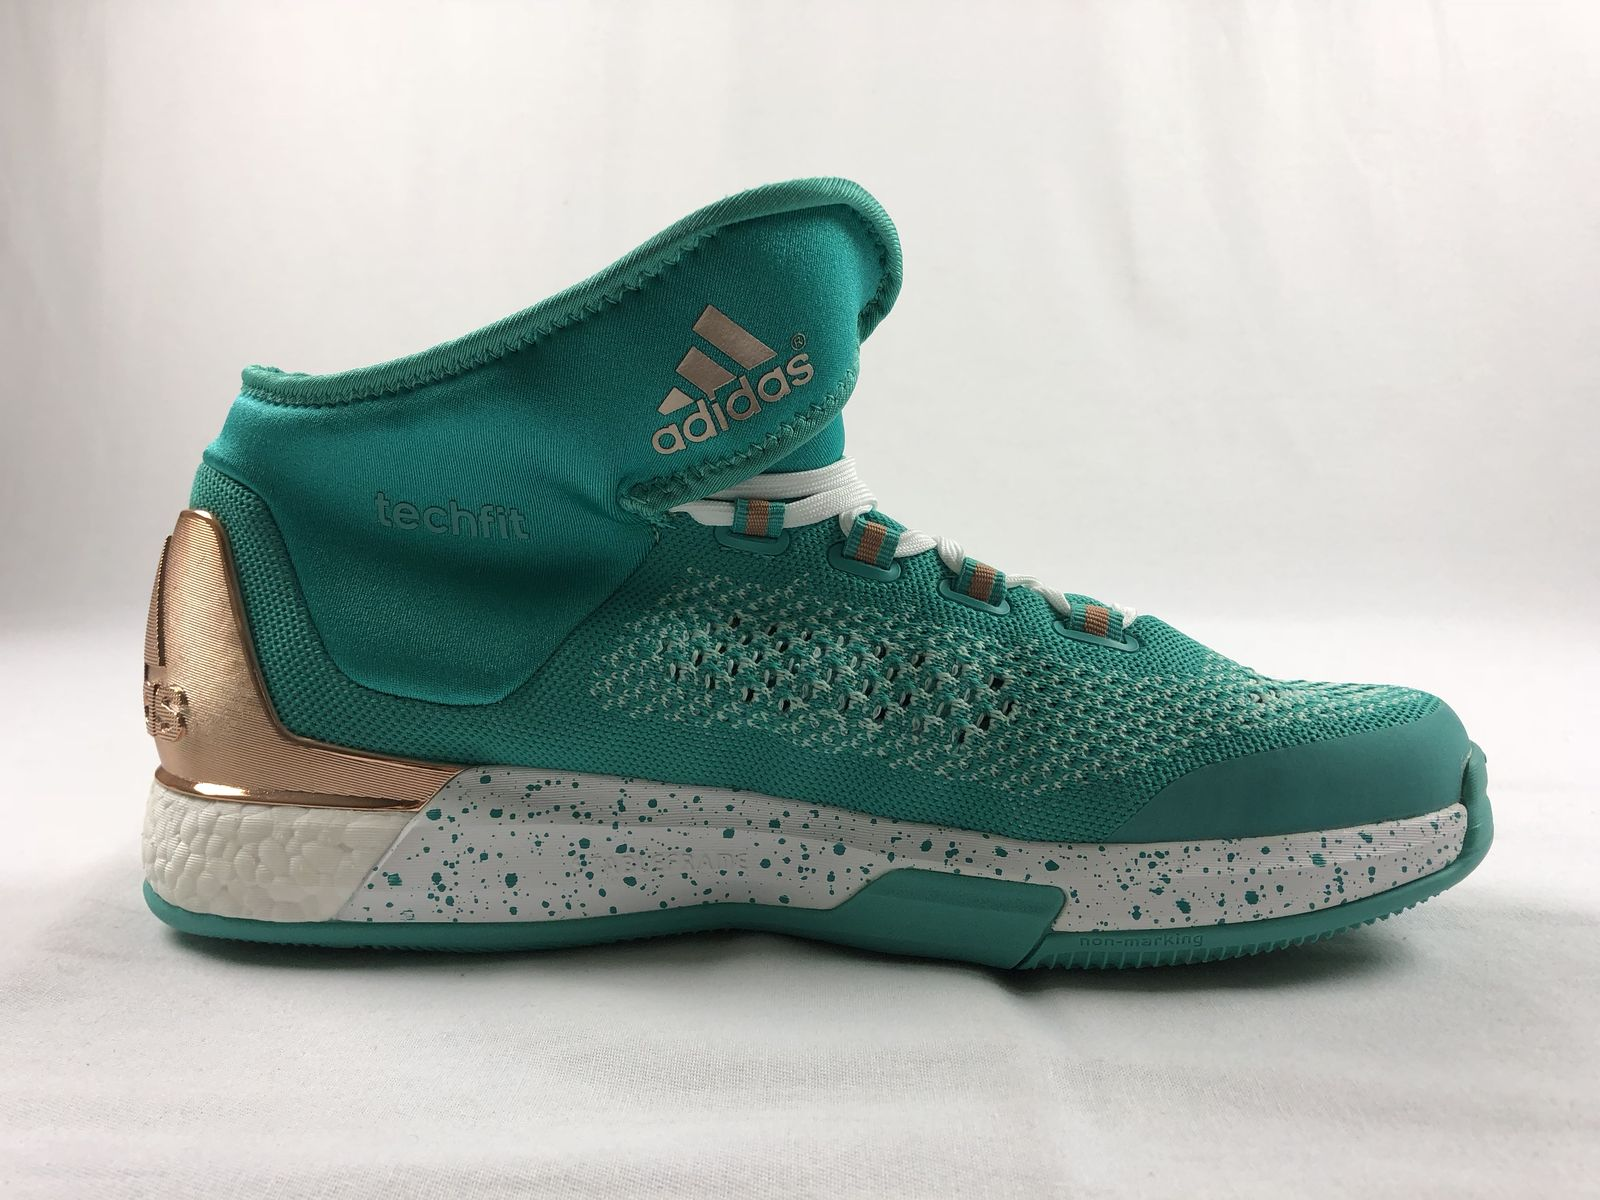 online store 4c753 5b1ff NEW adidas Crazylight Techfit - Teal Basketball Shoes (Mens 14.5)